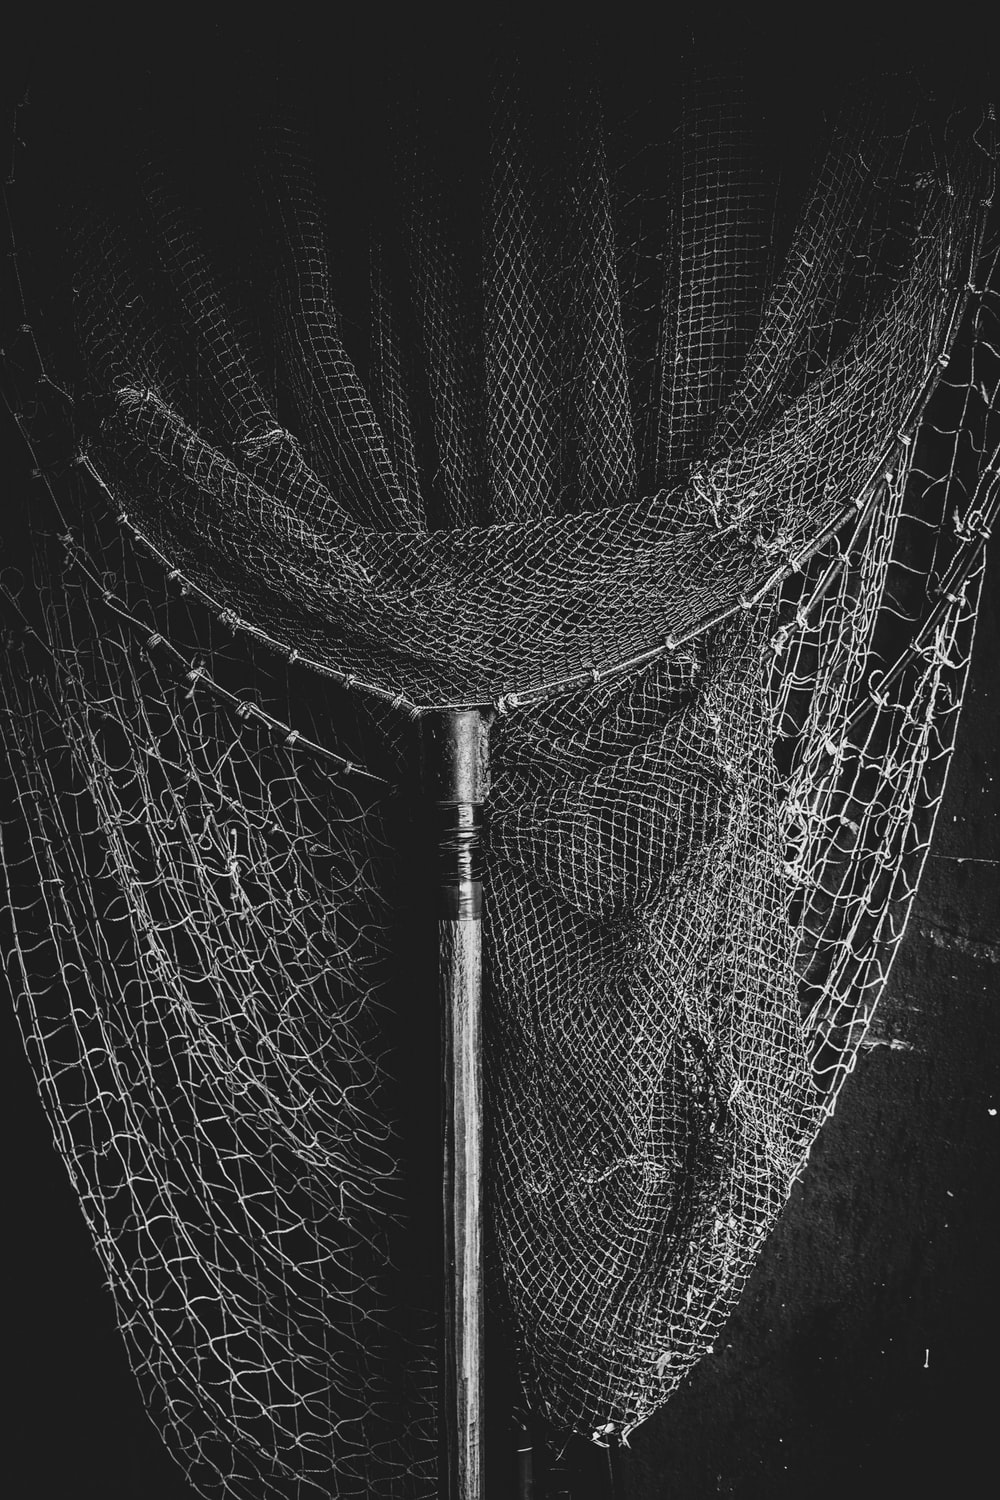 black and white photo of a net